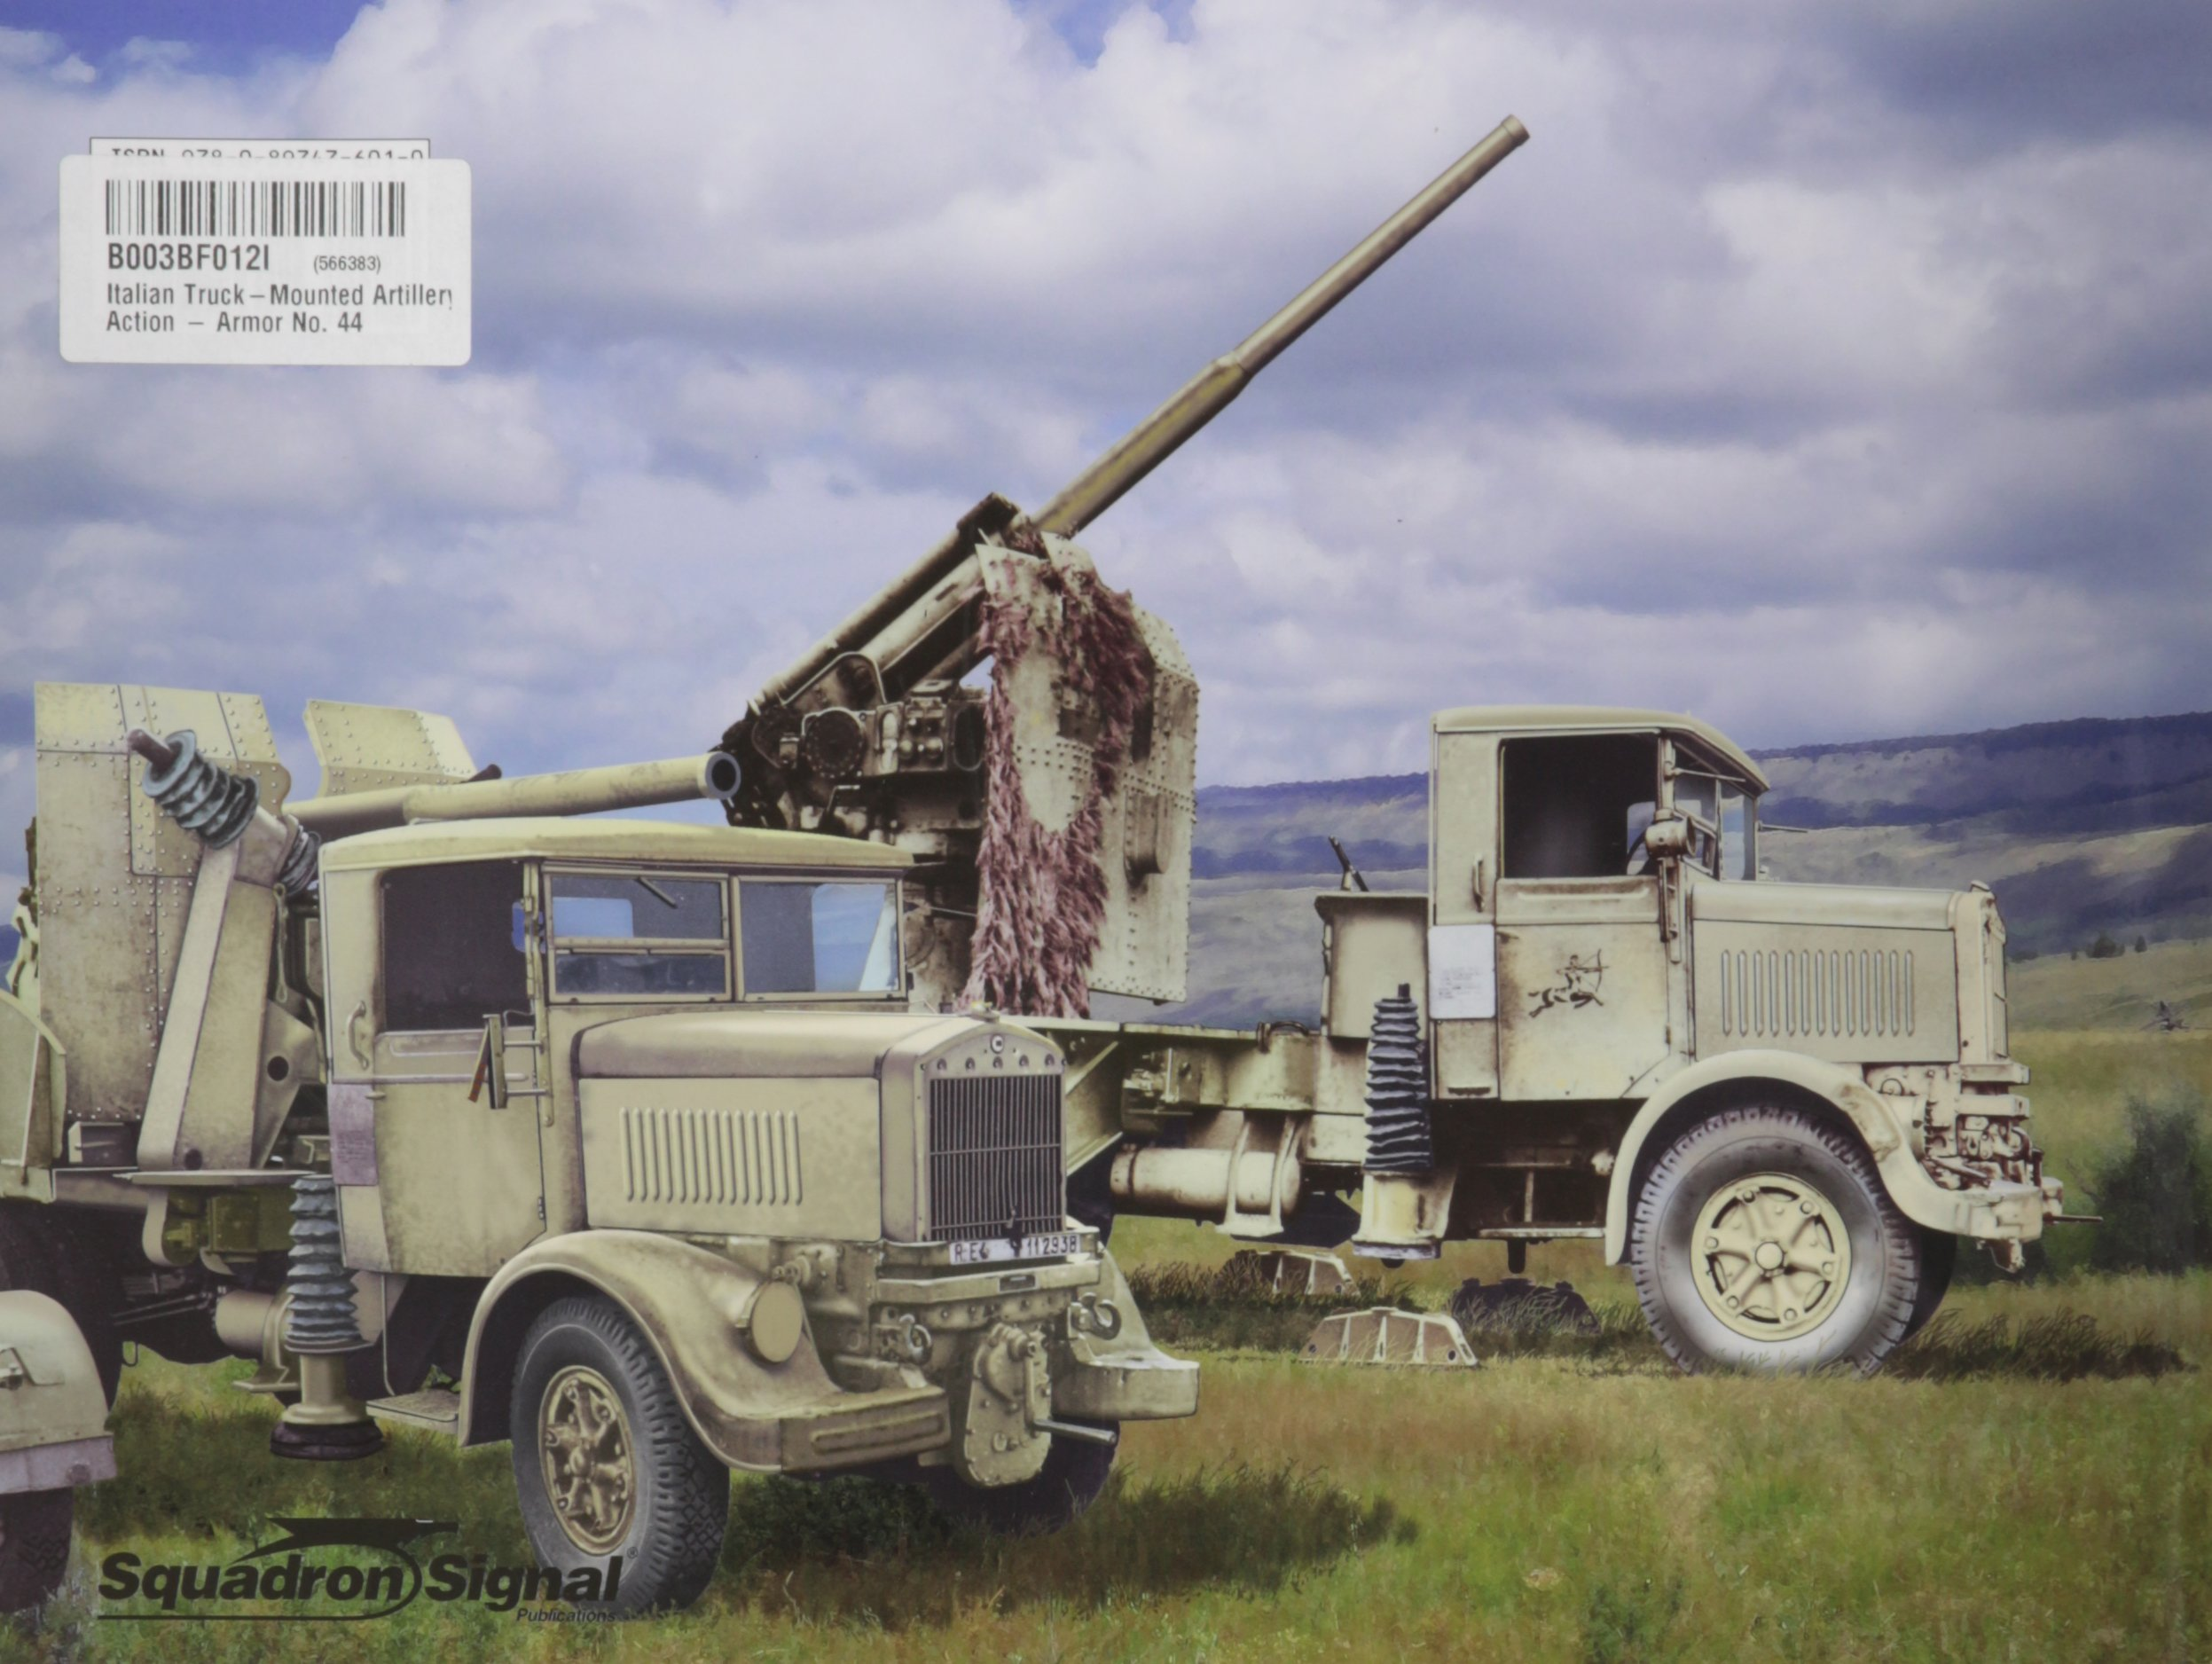 Italian Truck Mounted Artillery in Action: Autocannone (Squadron Signal 2044)